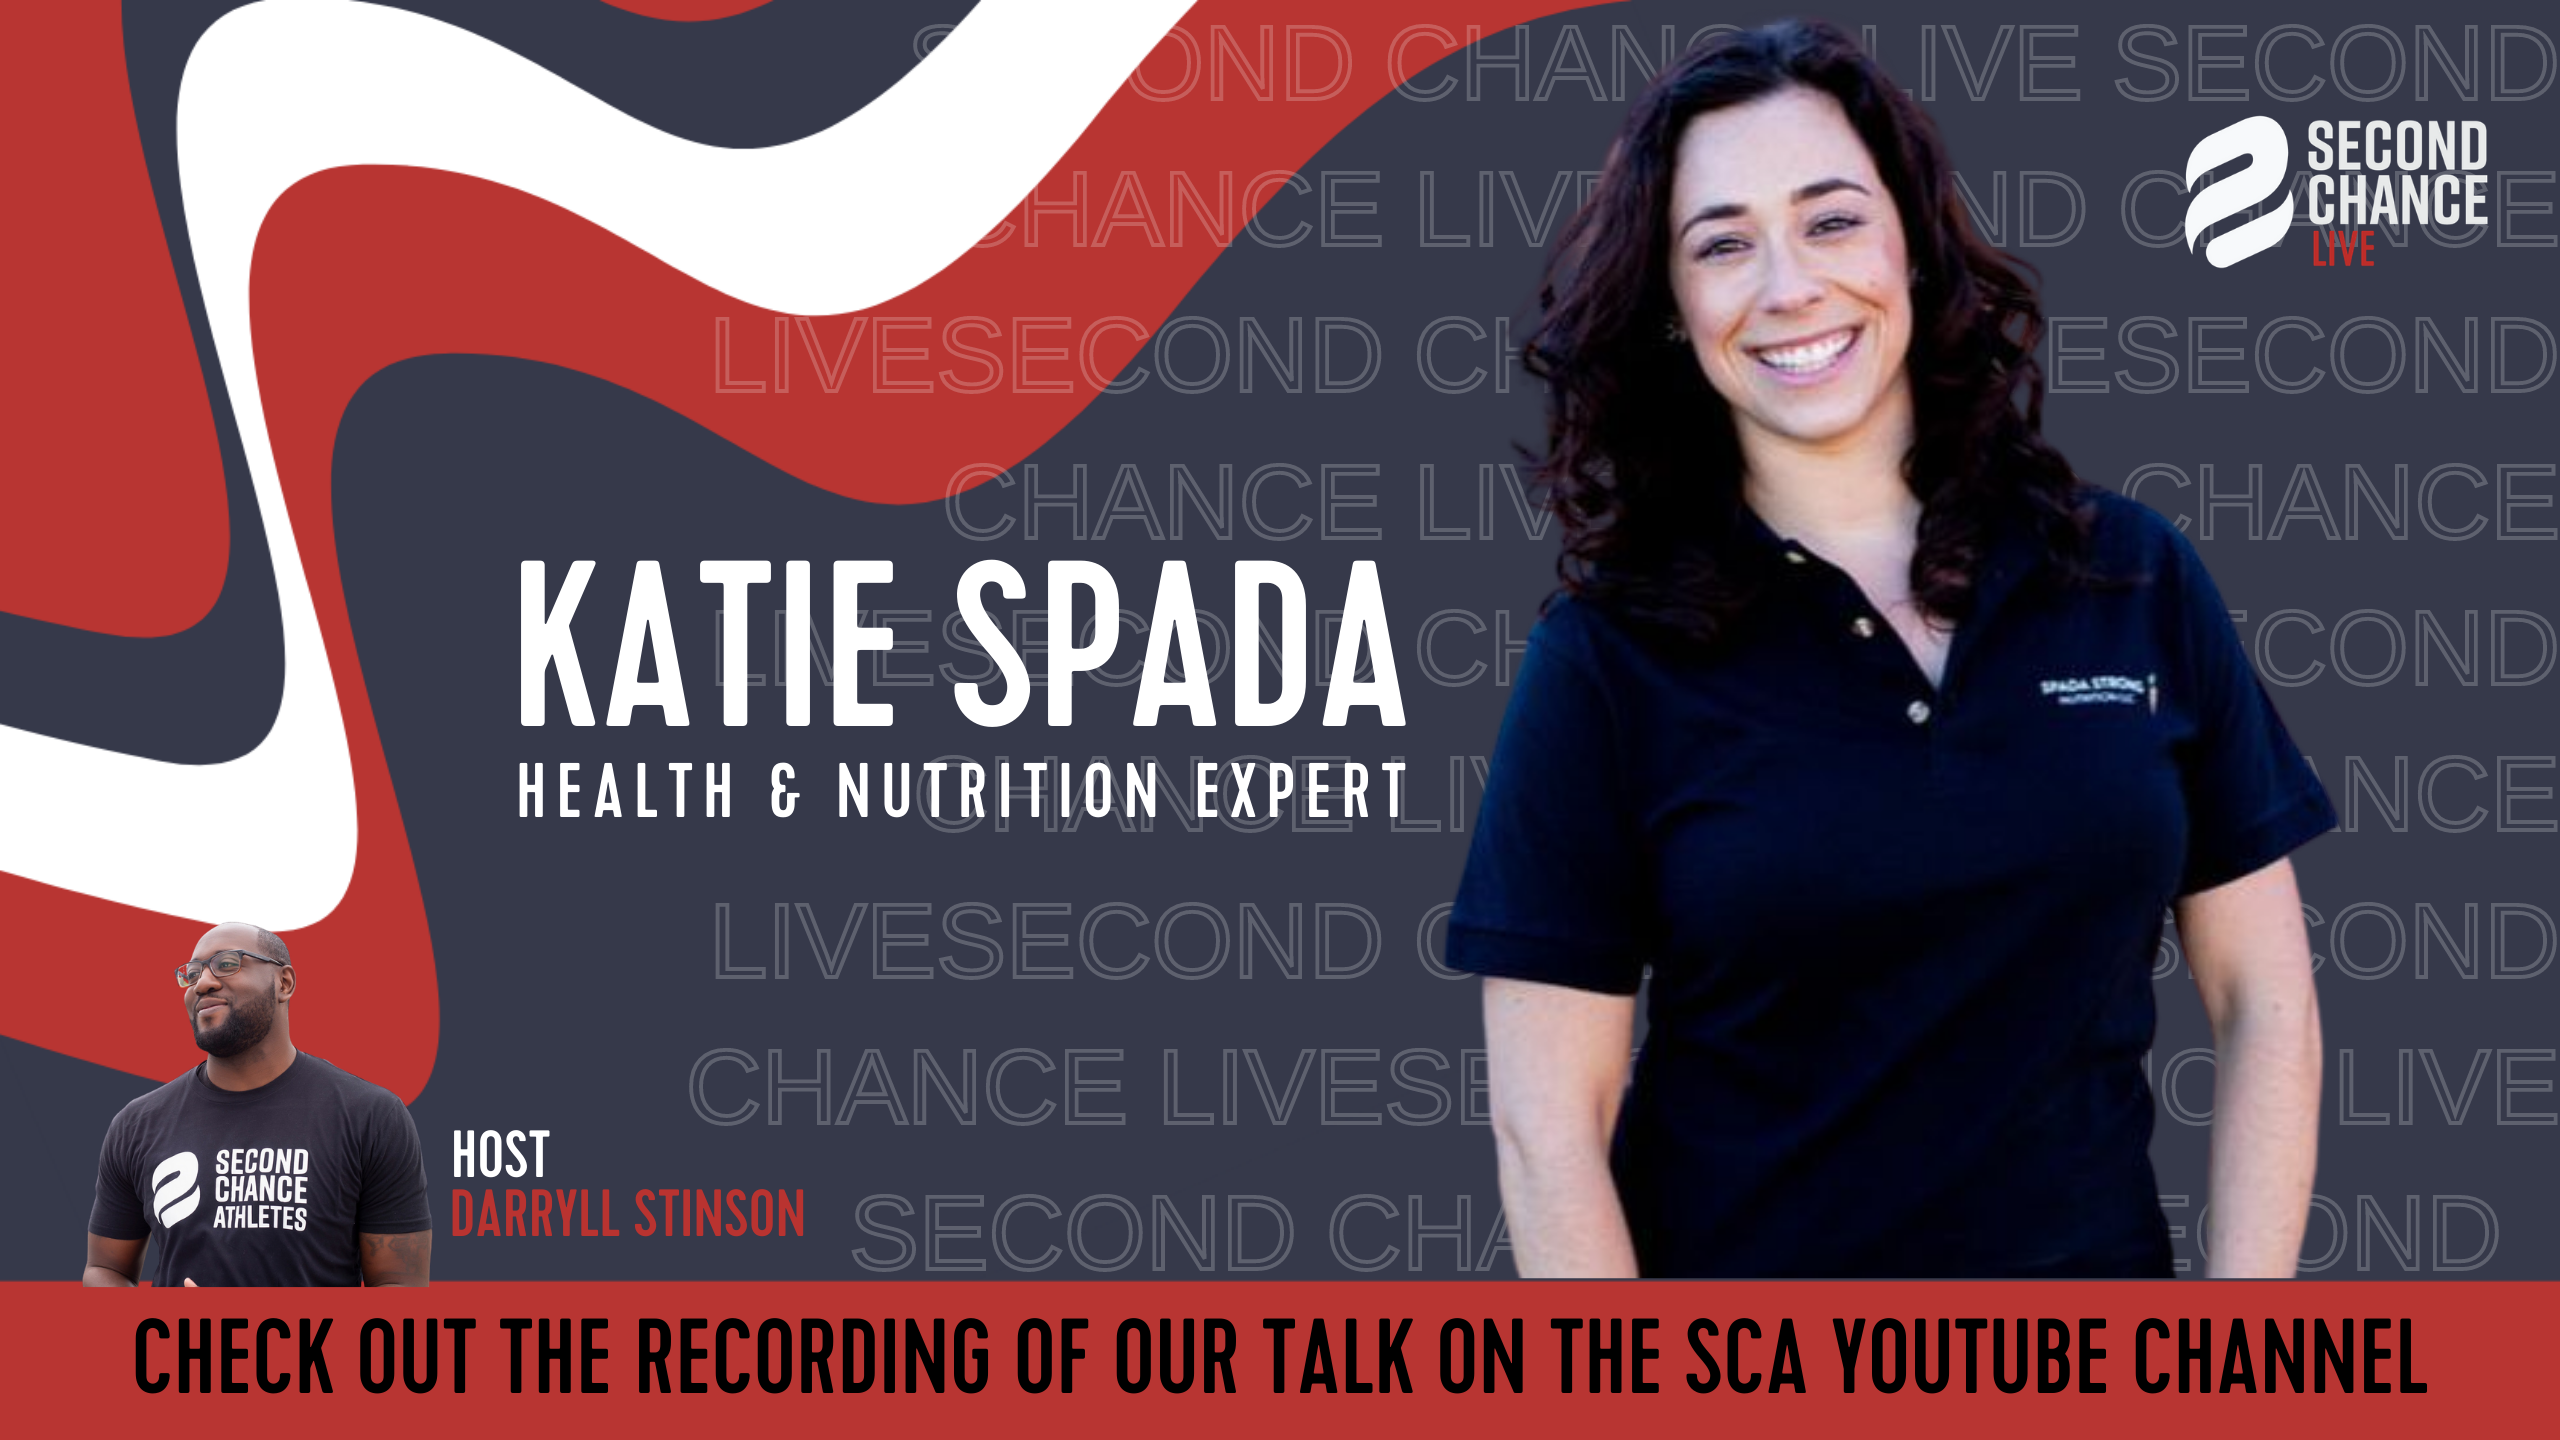 Second Chance LIVE -with Katie Spada